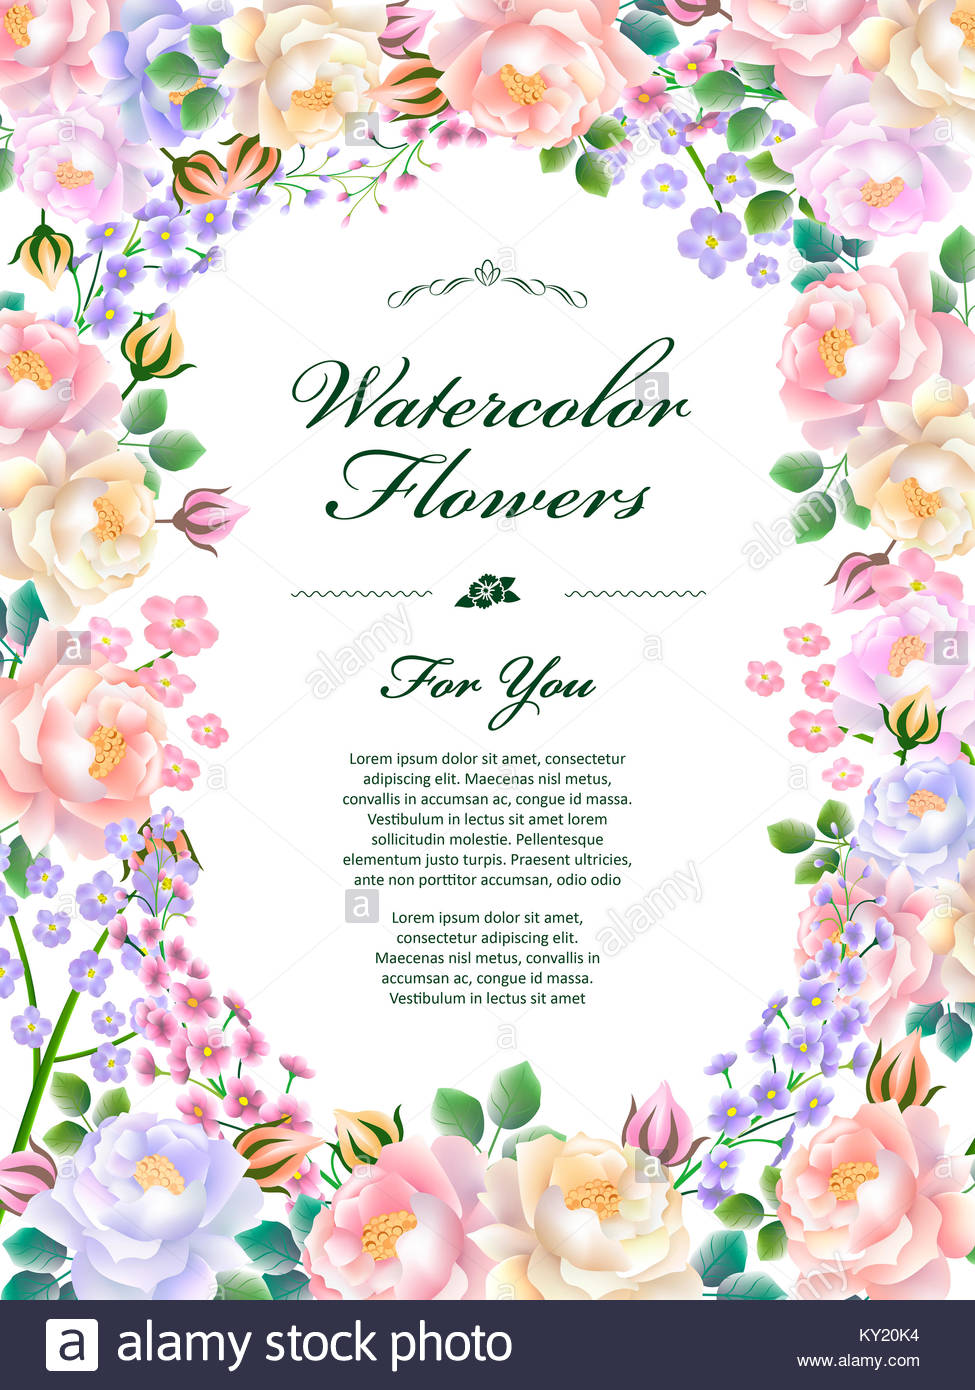 attractive floral poster template design stock photos attractive